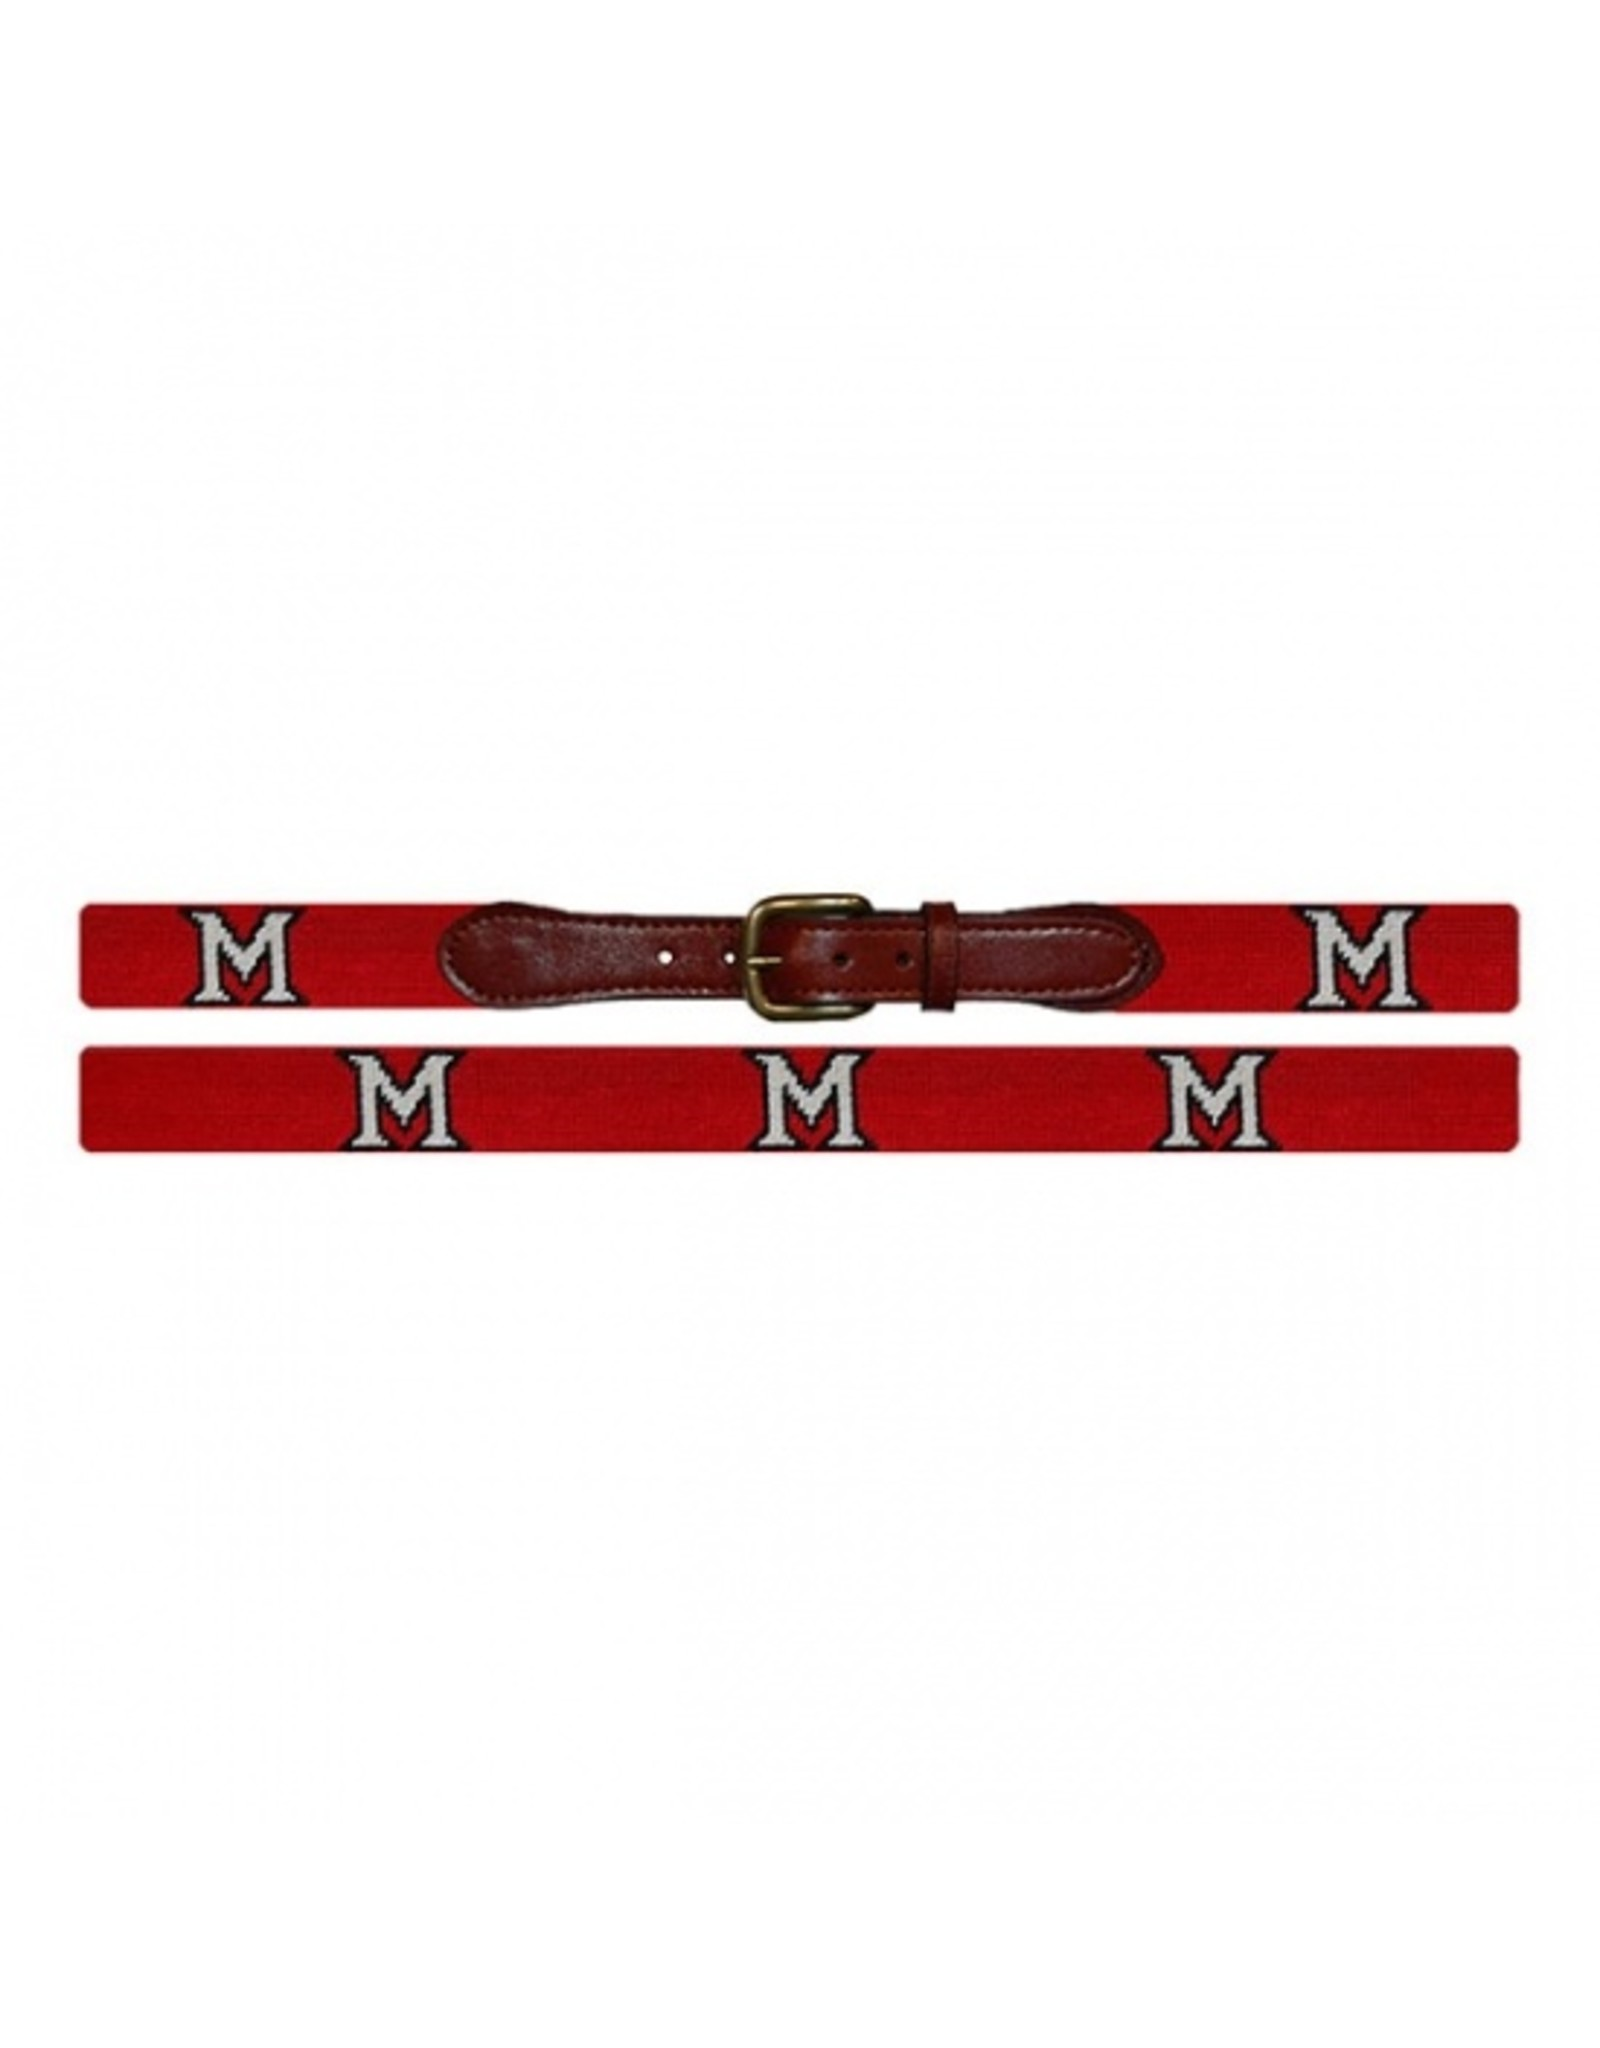 Smathers & Branson Miami University Needlepoint Belt